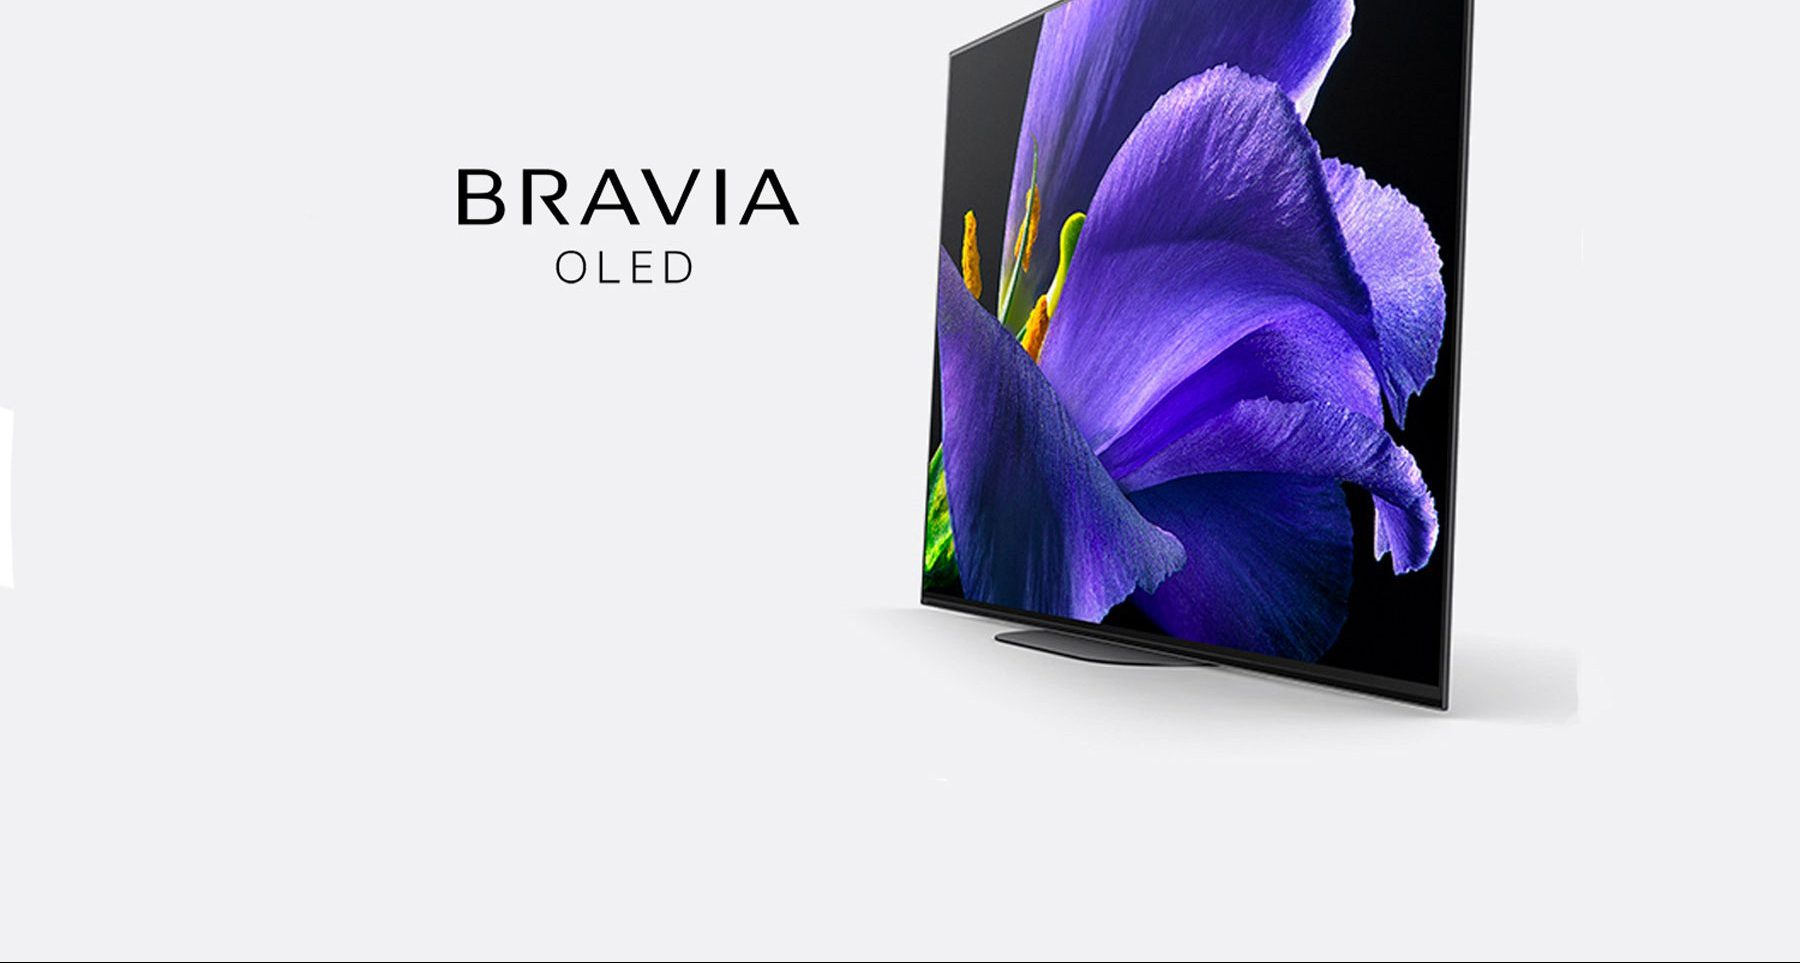 Sony A8G and A9G OLED TVs Overview | Best Buy Blog